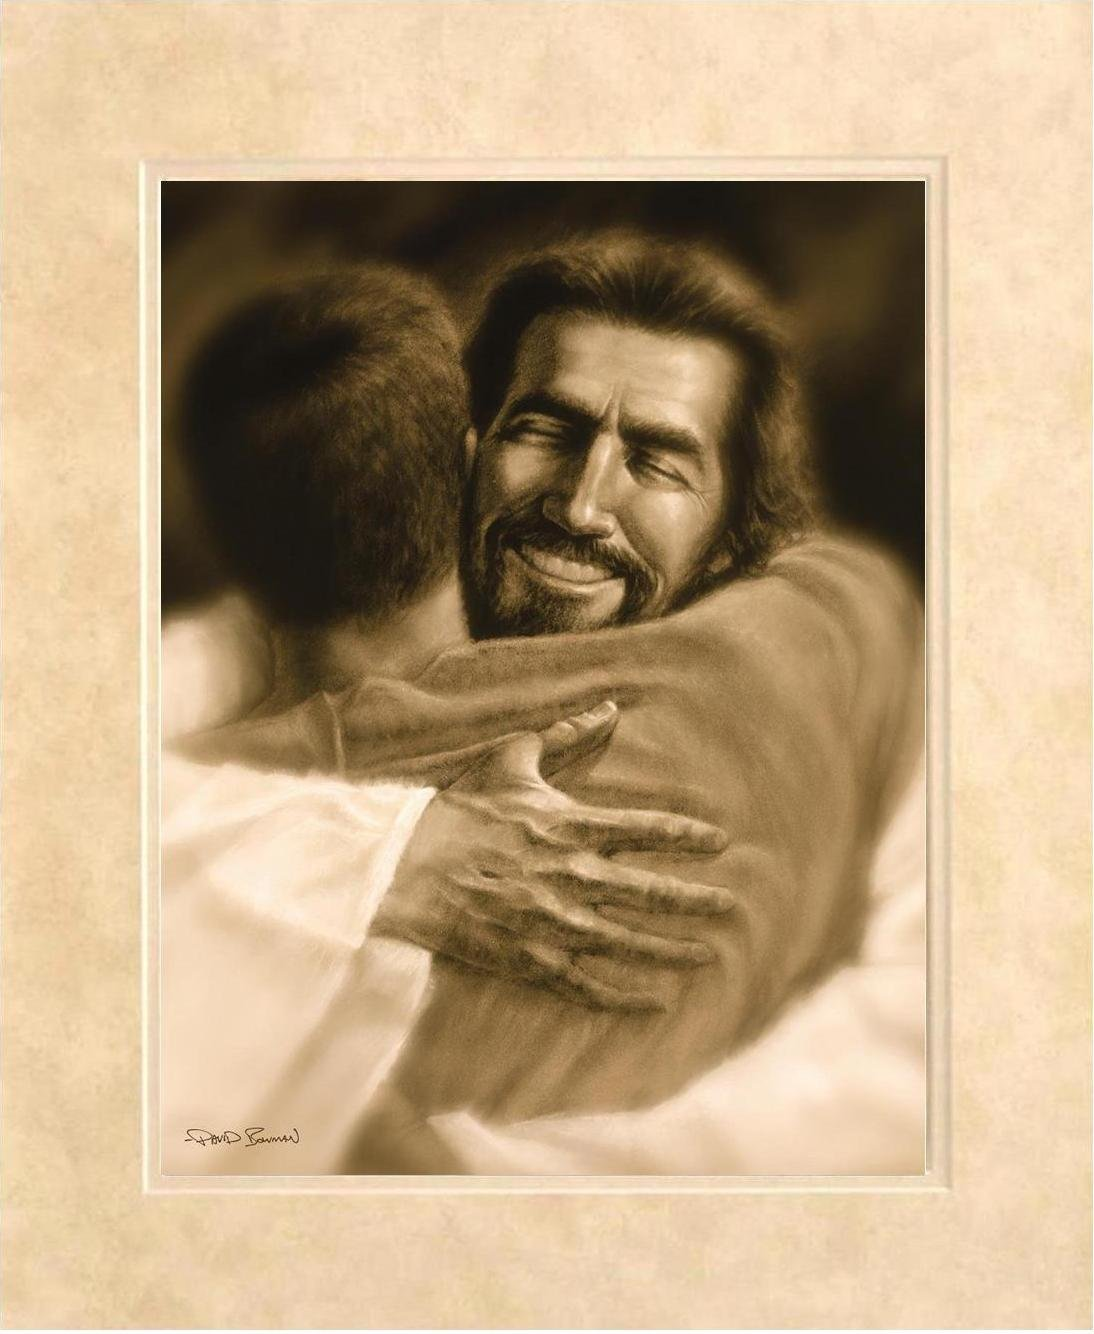 Home – Wall Art Print Jesus Christ Welcome Home Hug by David Bowman Religious Spiritual Christian Fine Art 21 x25 Framed